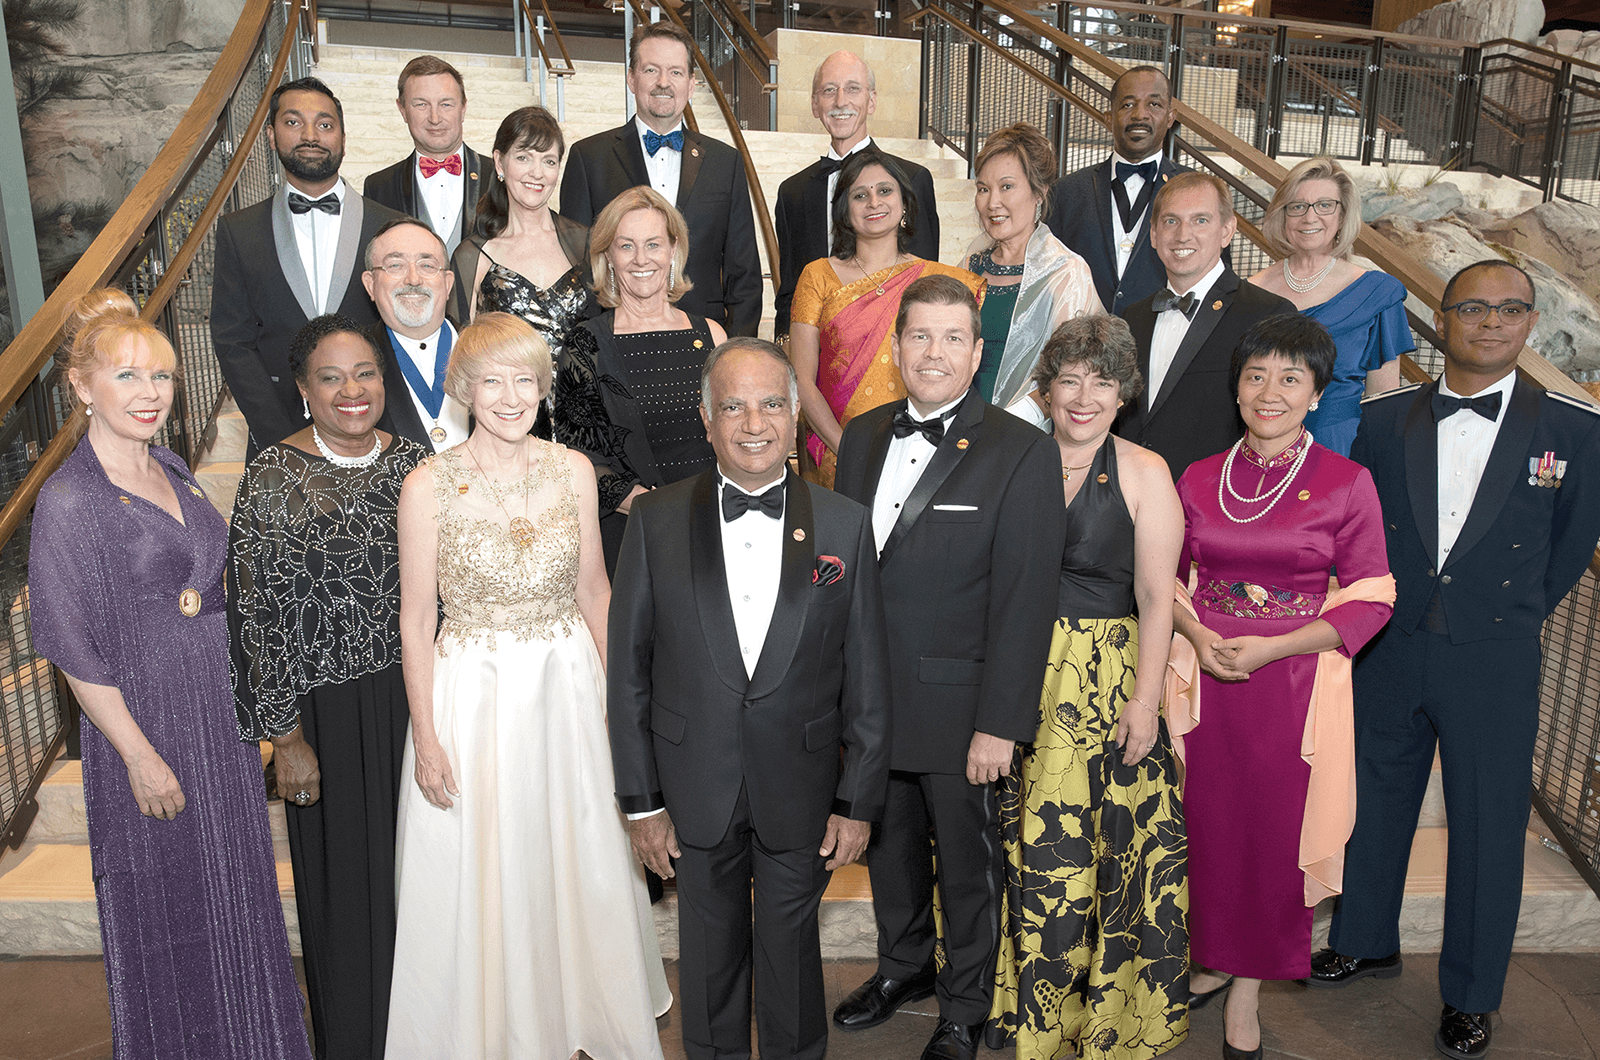 The 2019-2020 Toastmasters Board of Directors.